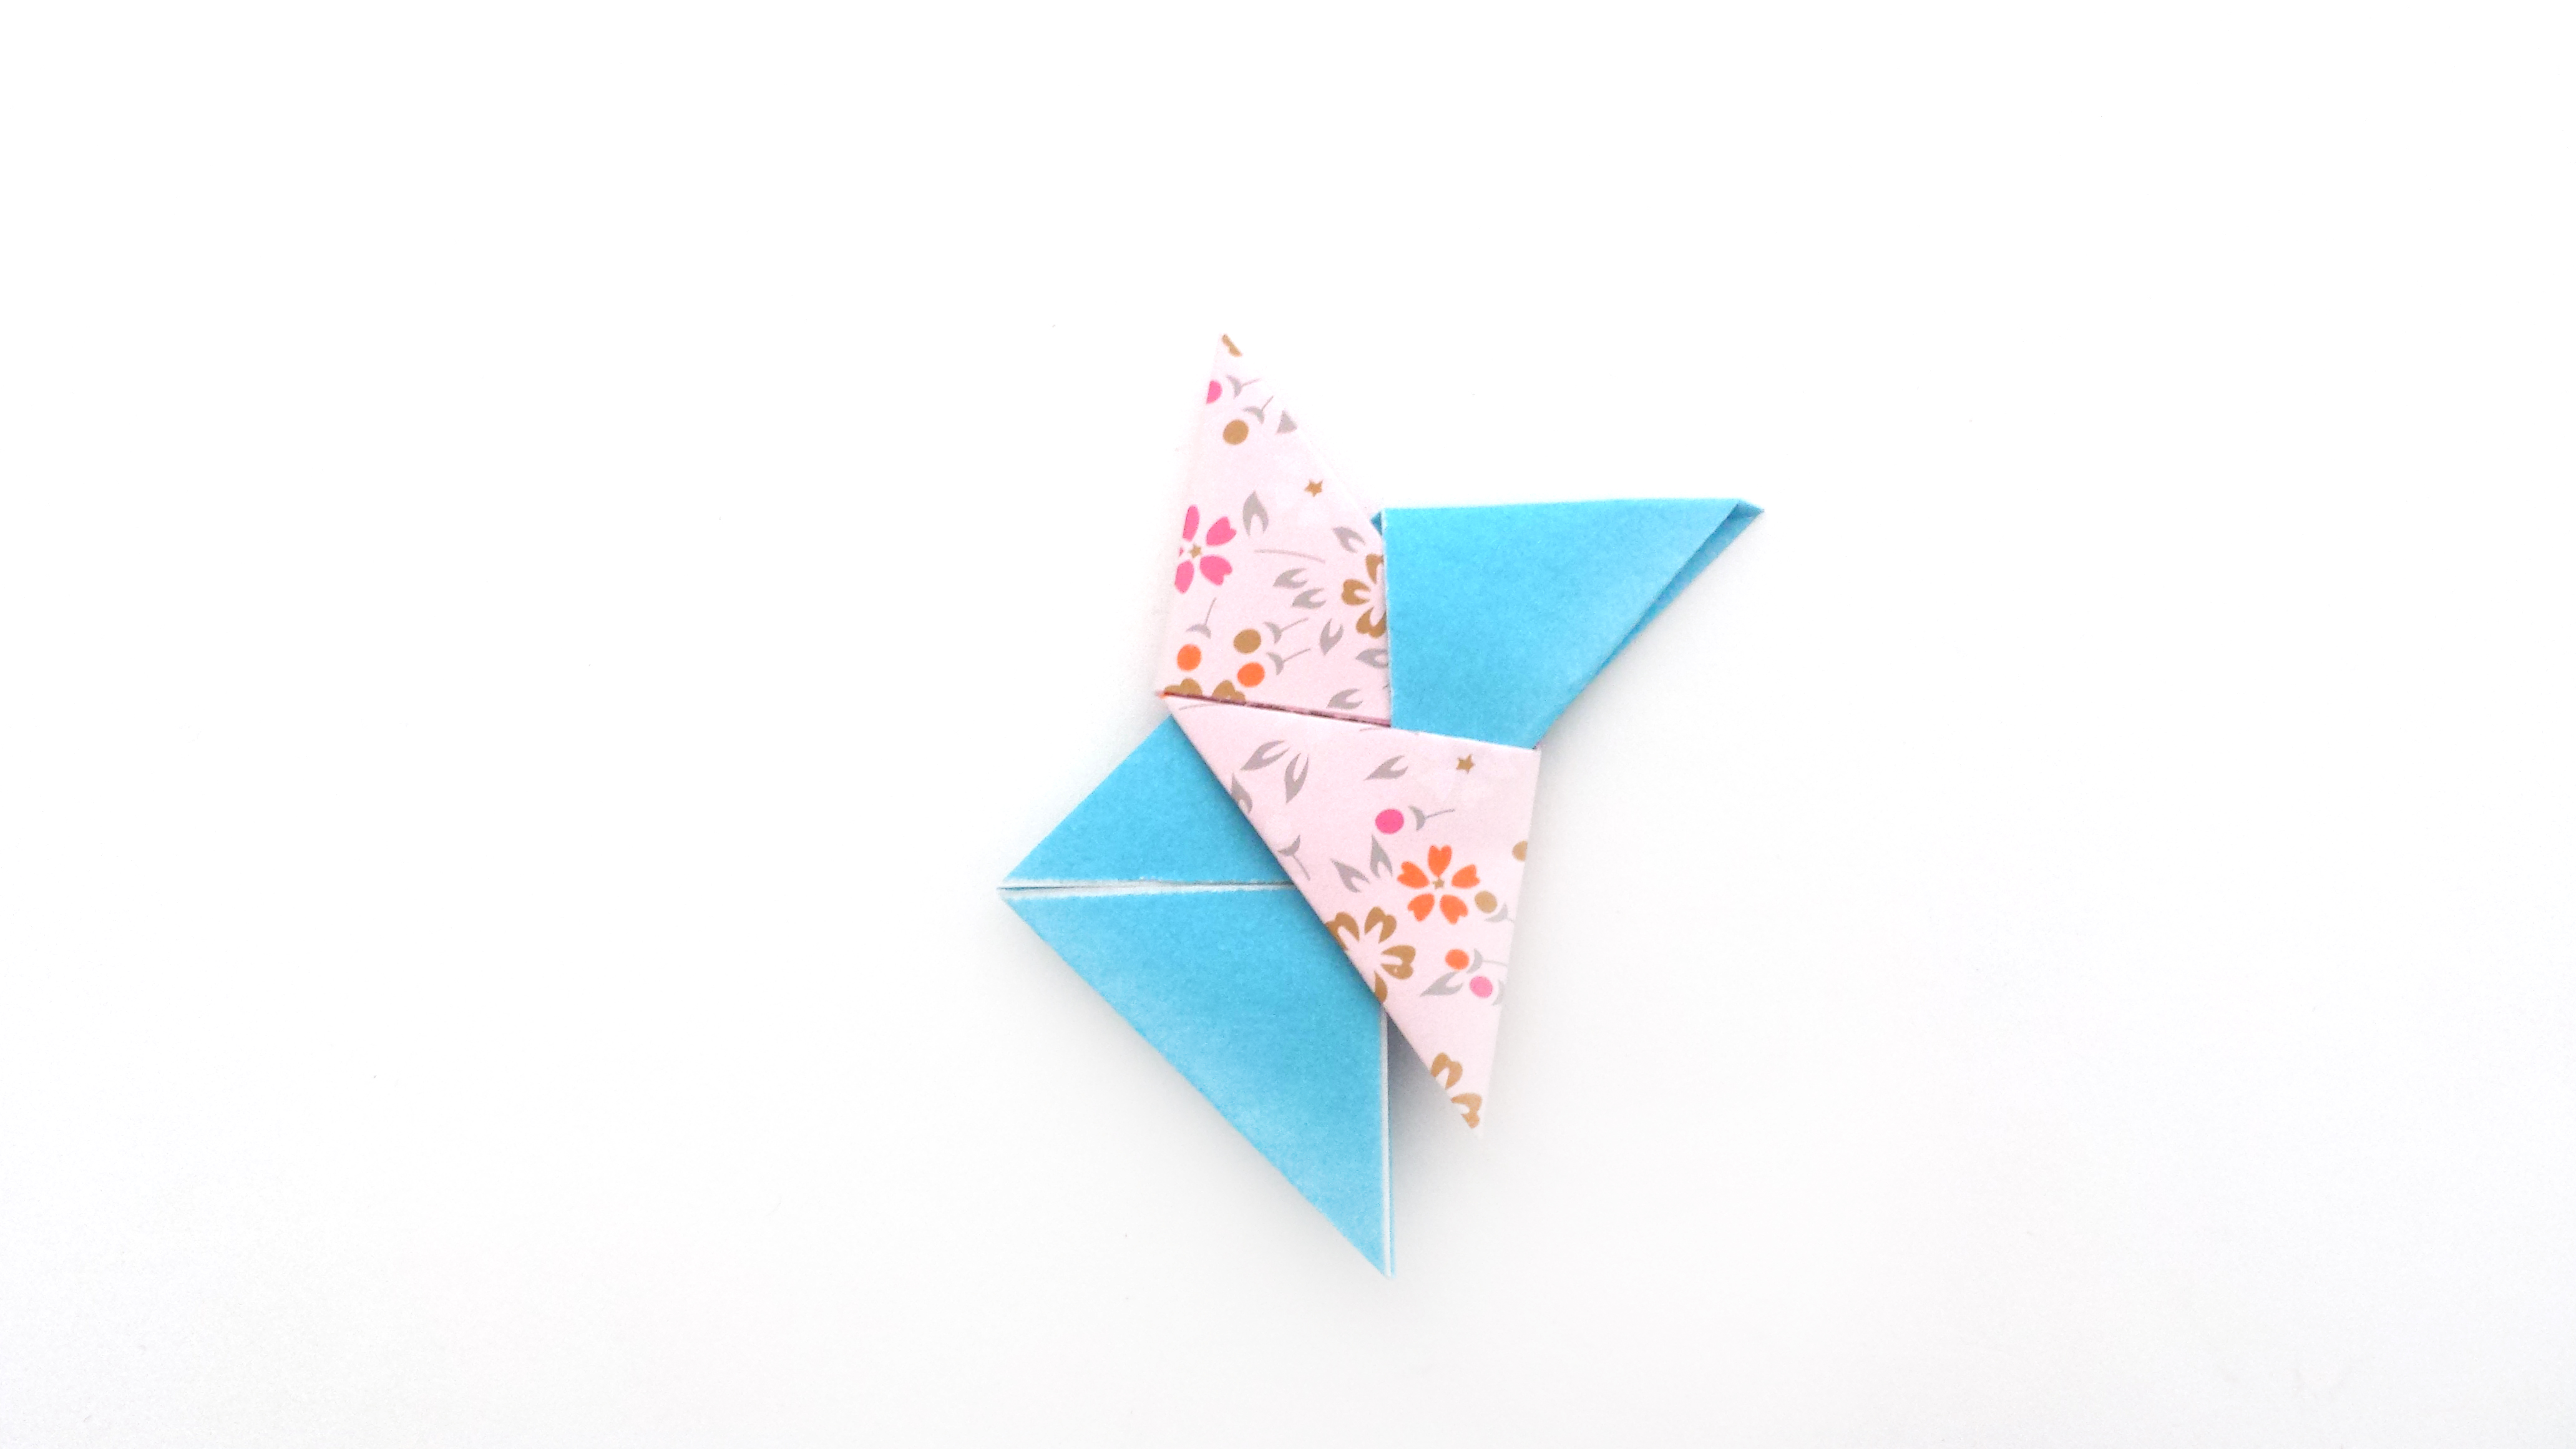 Origami Fidget Spinner - photo#28